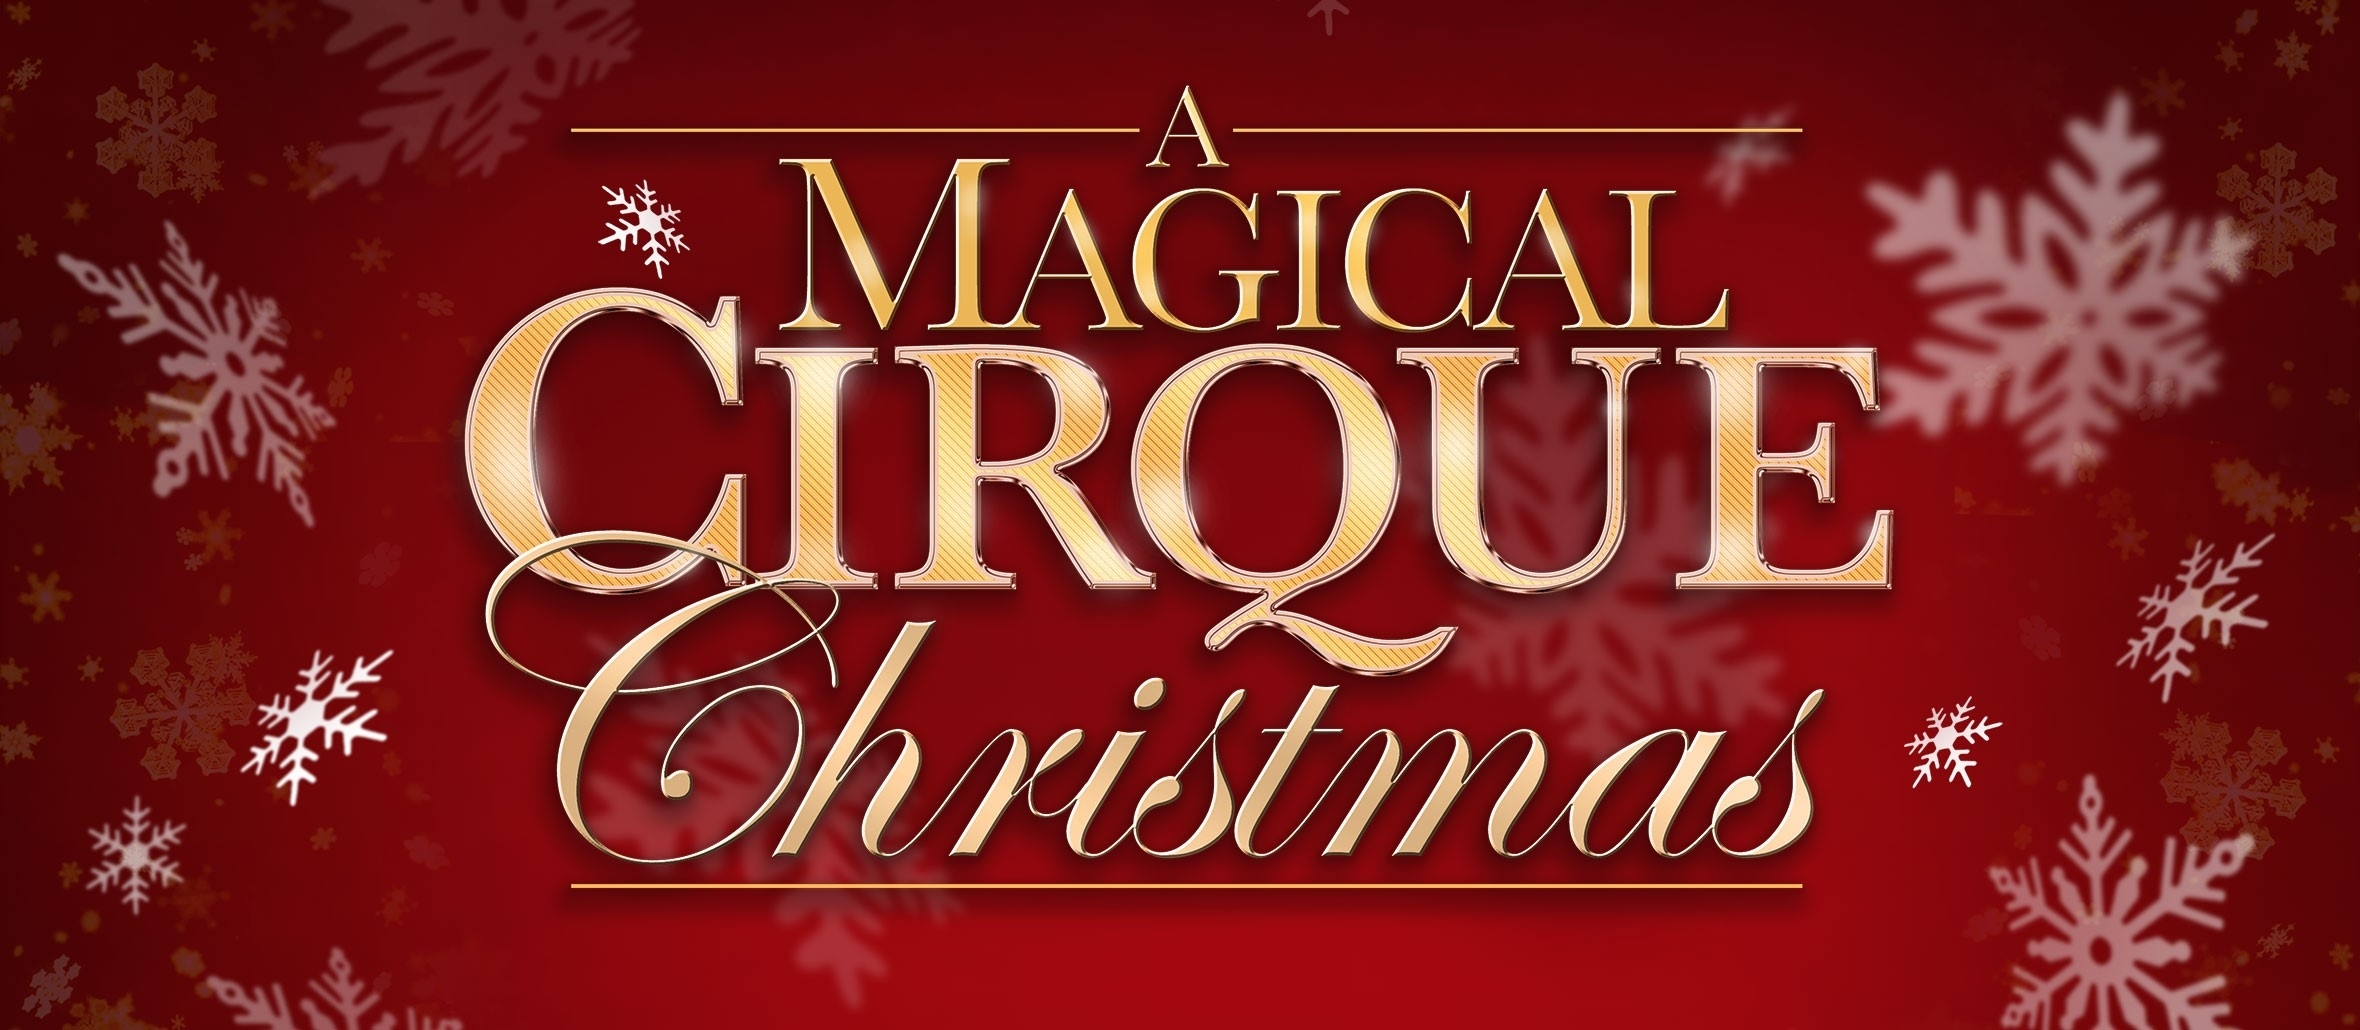 A Magical Cirque Christmas | Barbara B. Mann - Performing